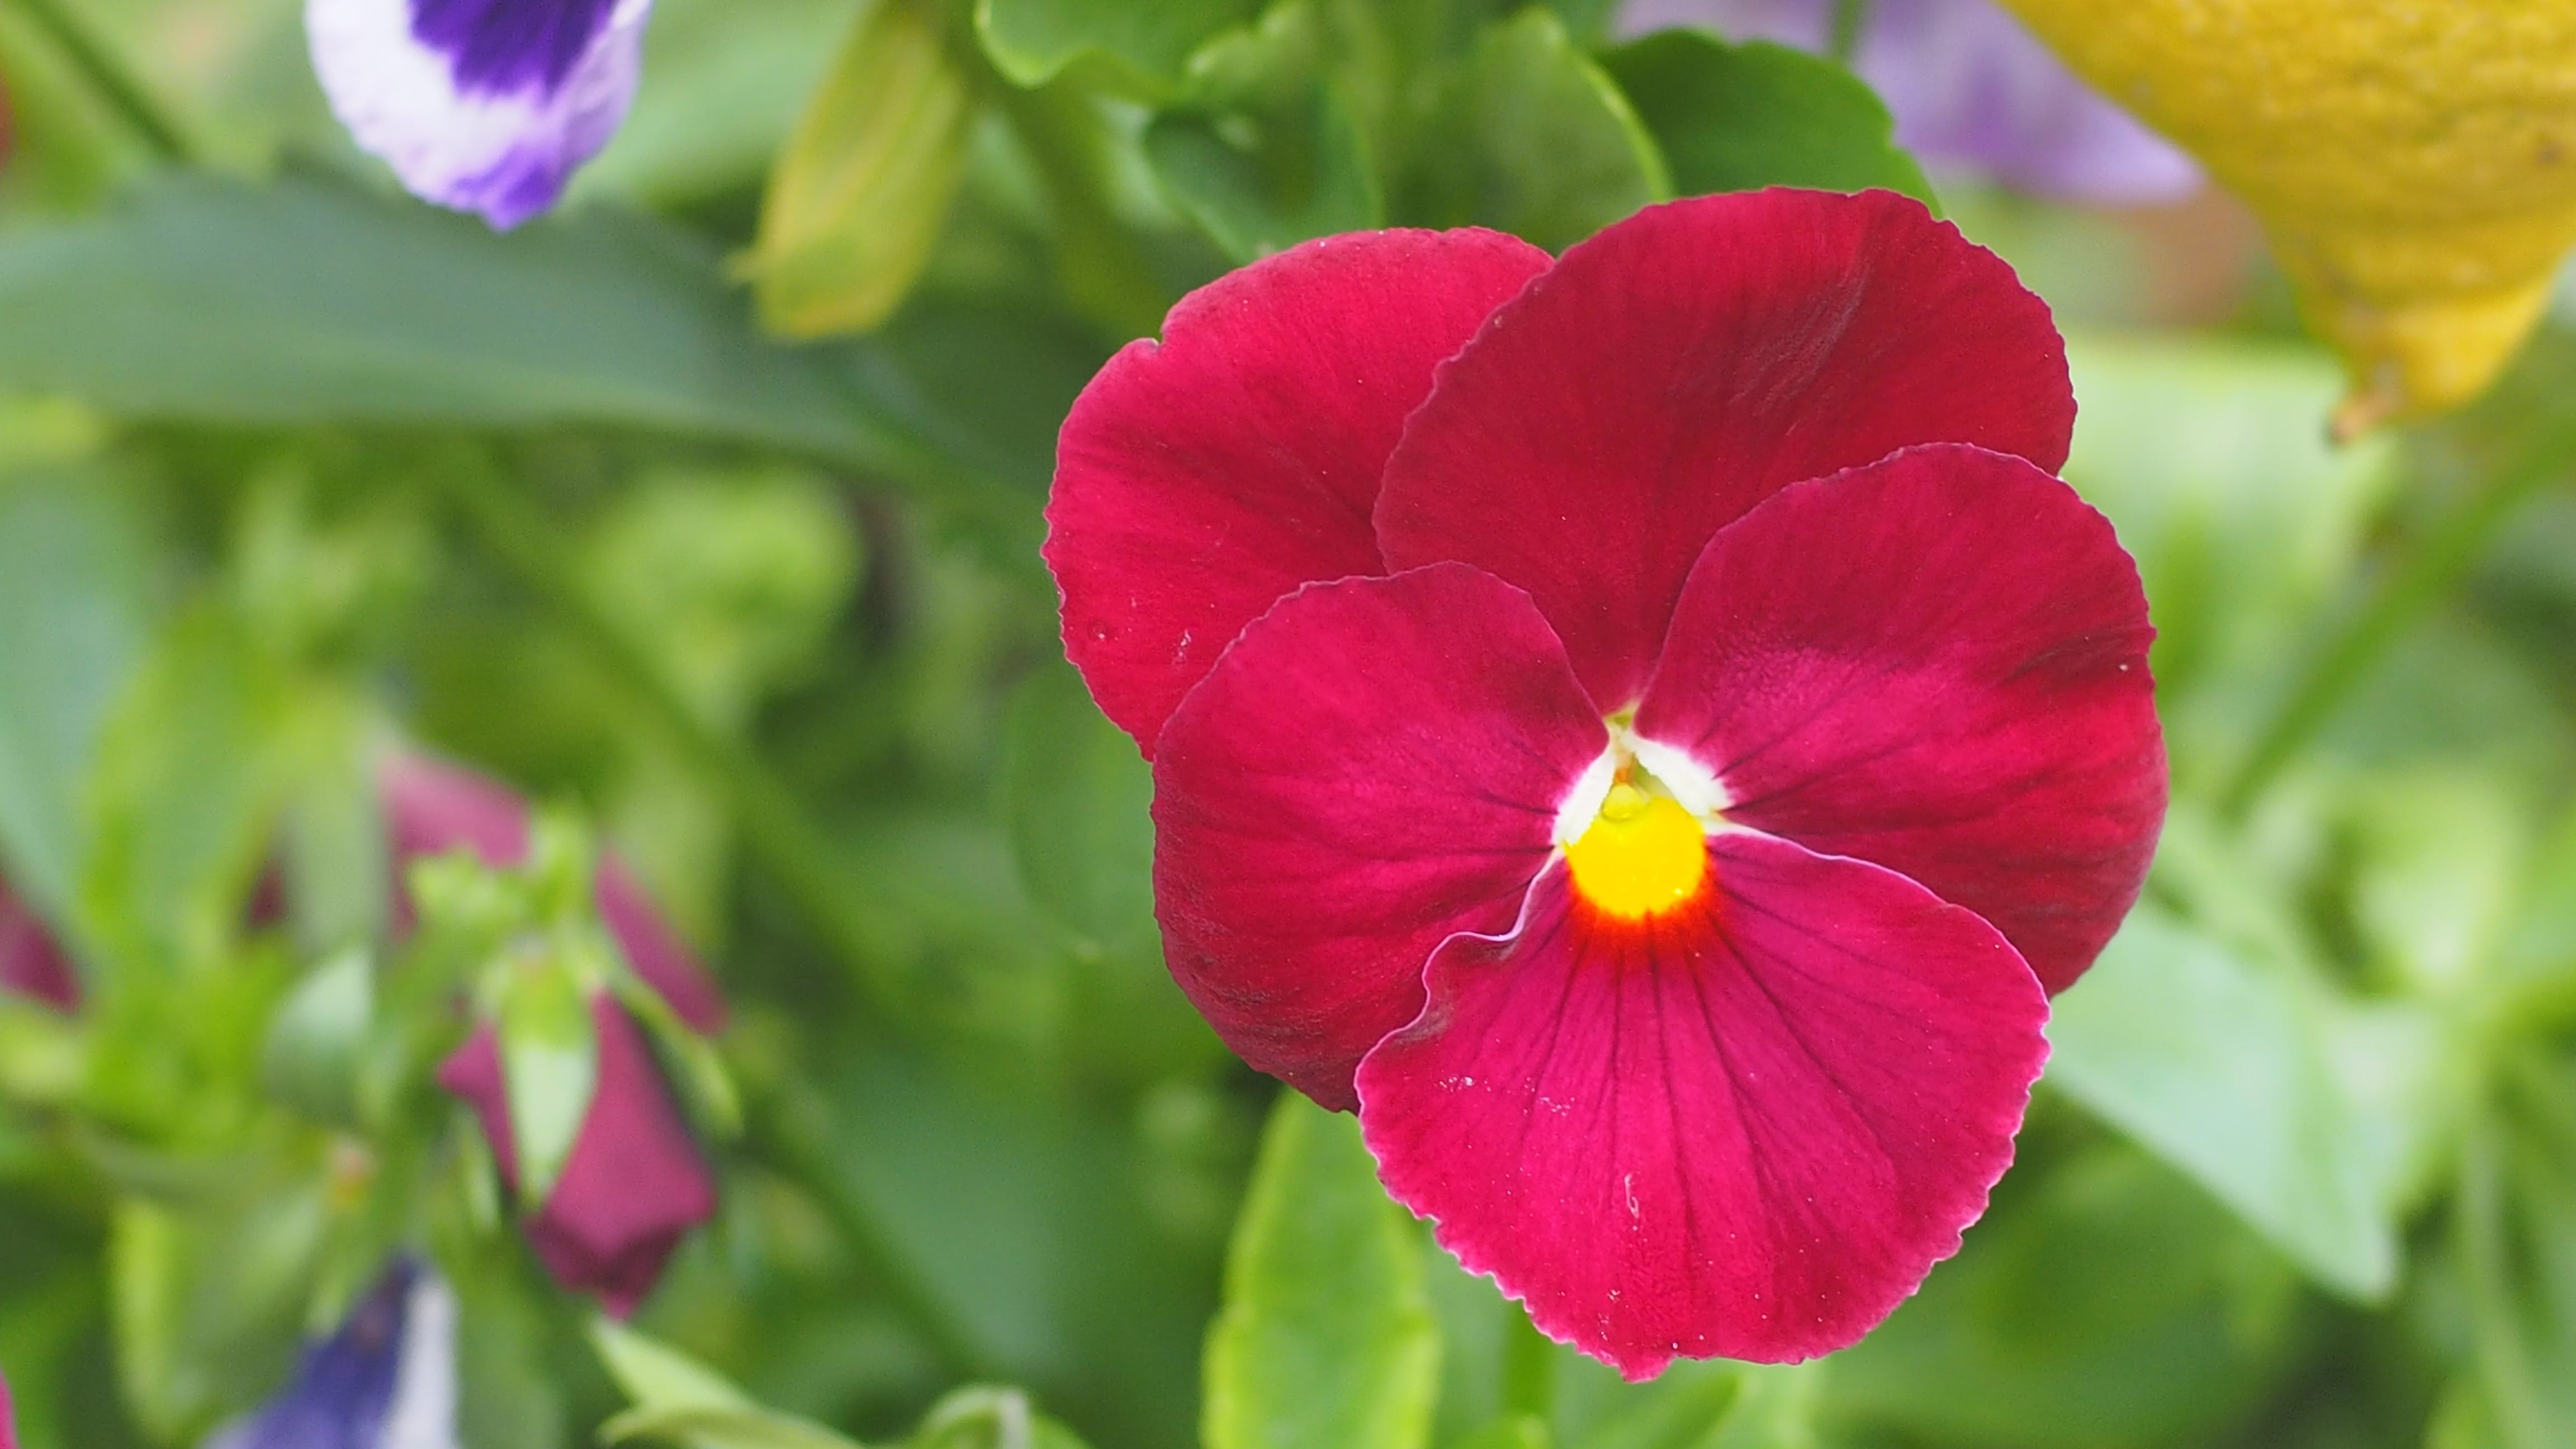 Free stock photo of flower, flowers, pansy, pink flower